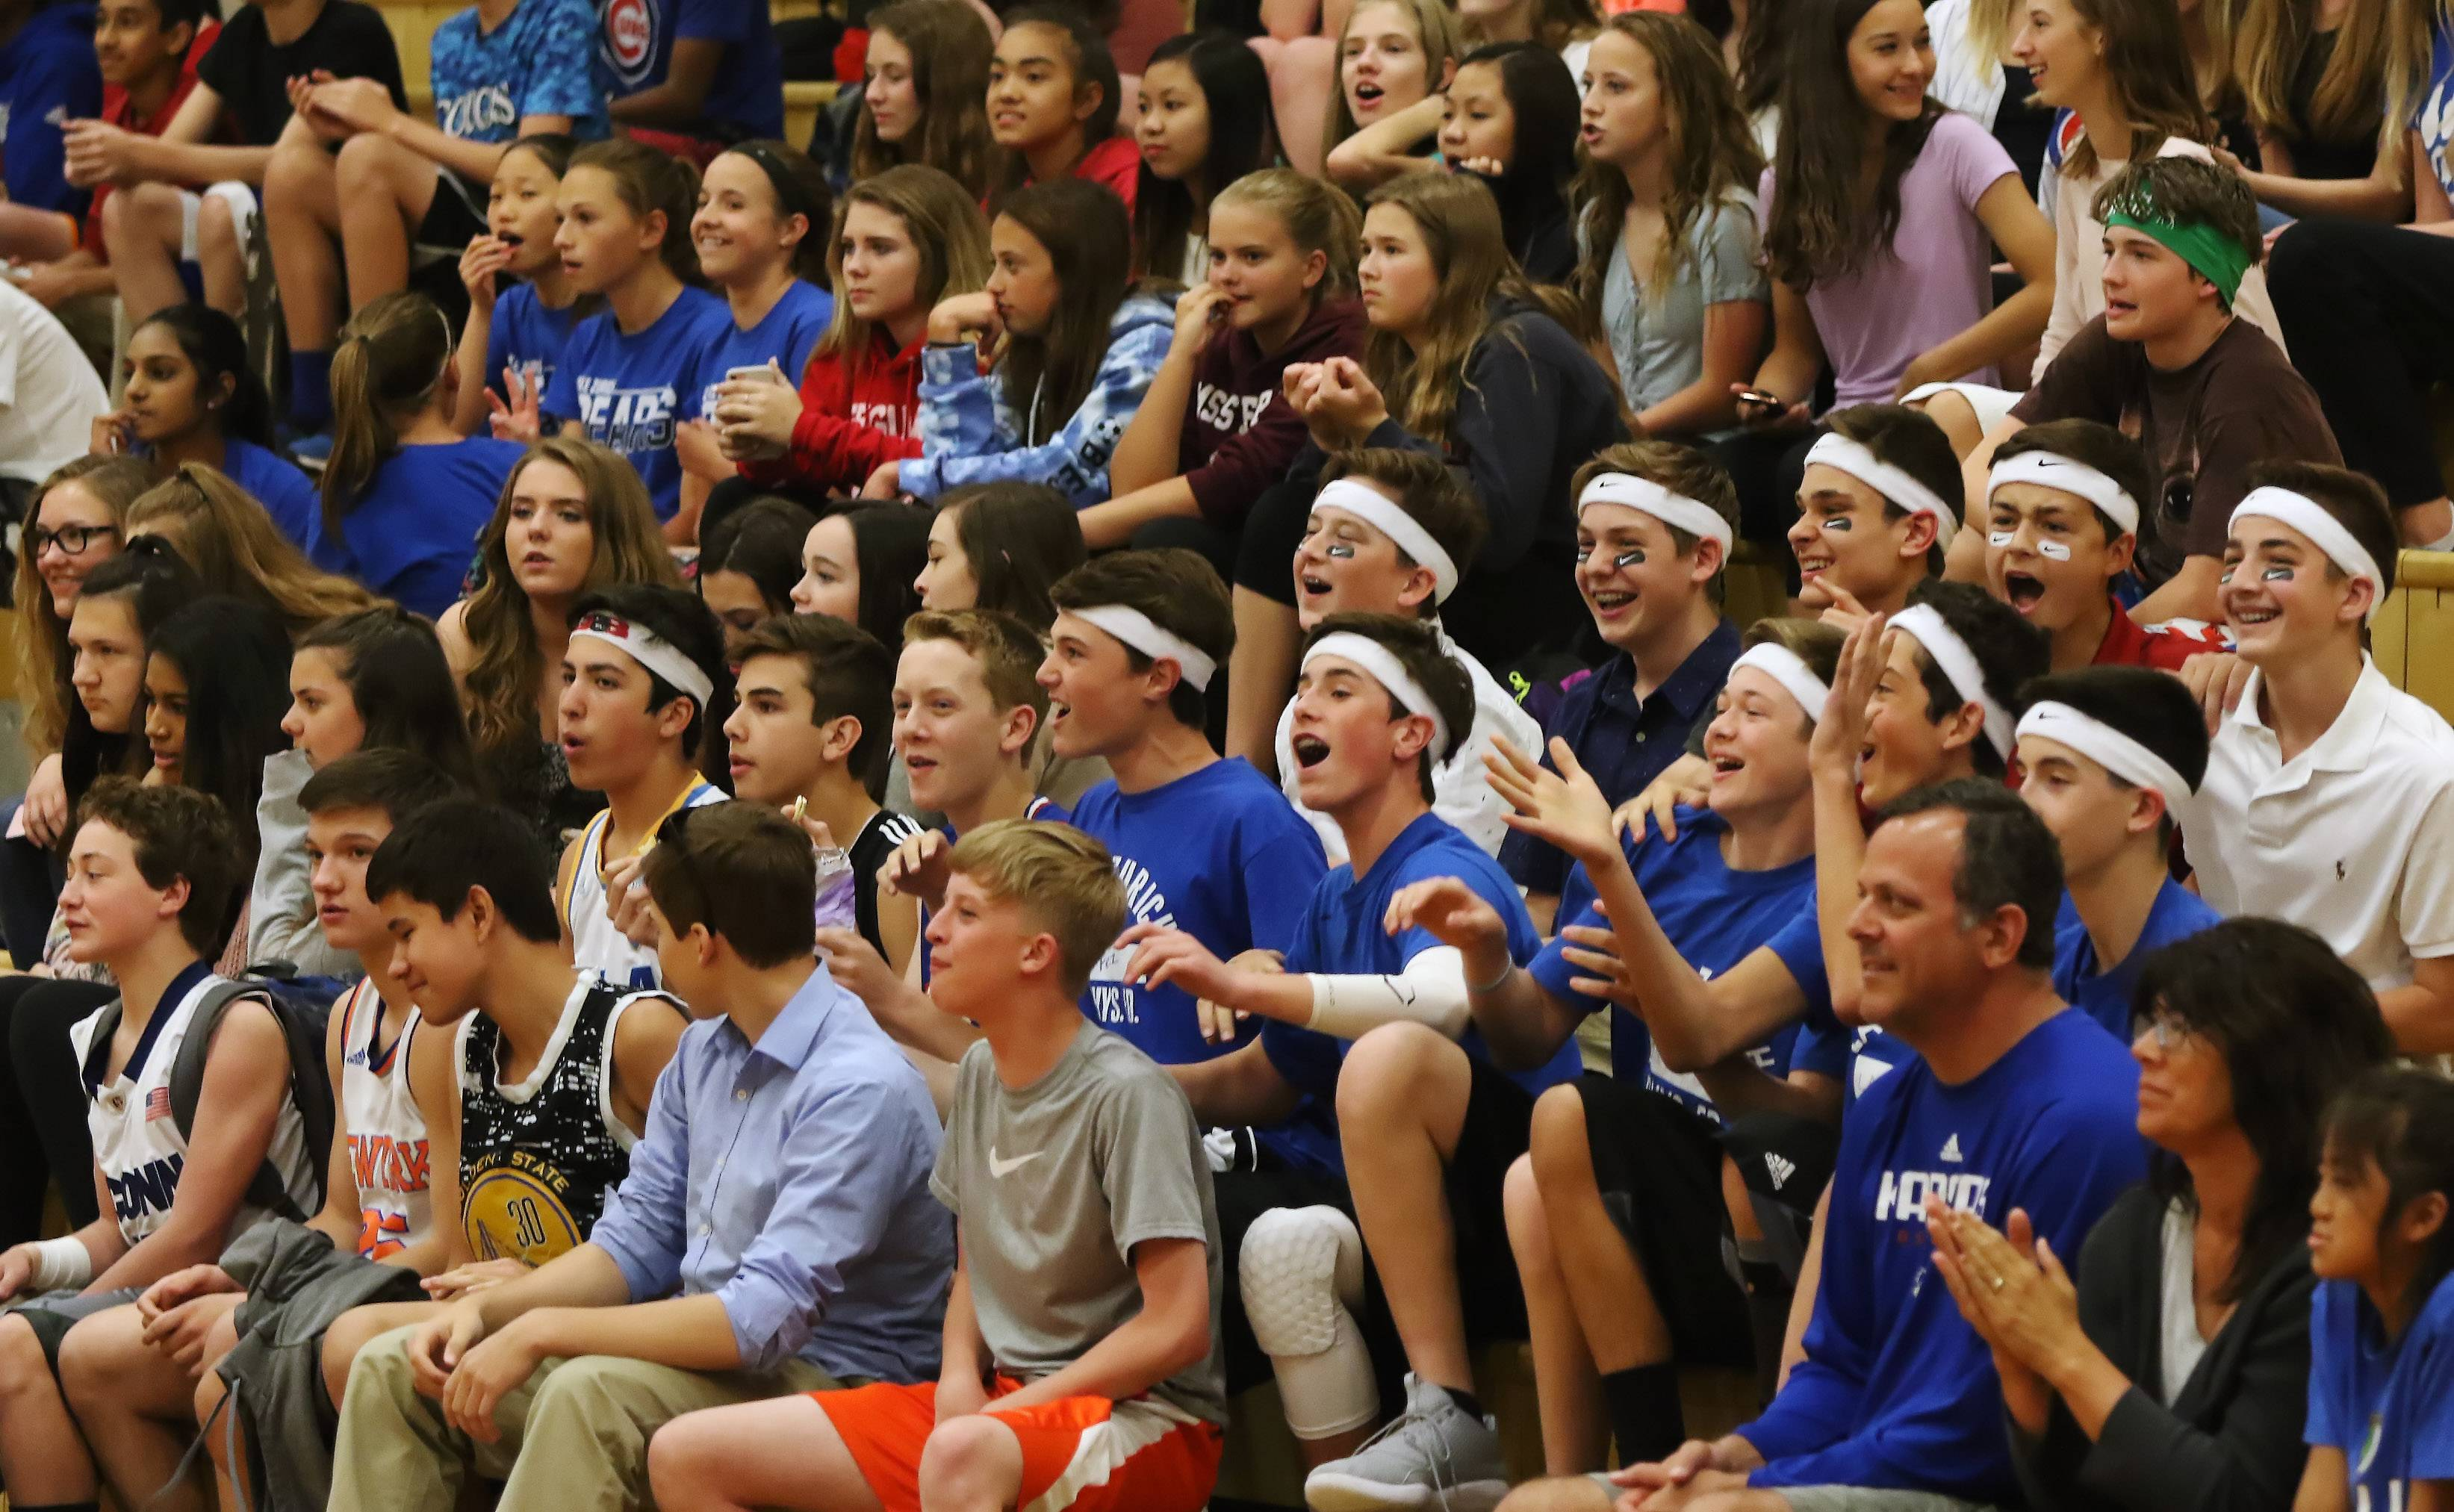 Fans cheer as the Average Joe's battle Team Callero during a charity dodgeball tournament Thursday at Lake Zurich Middle School South. The event was hosted by the student council to benefit NephCure, a nonprofit organization that provides support for people who suffer from kidney disease.